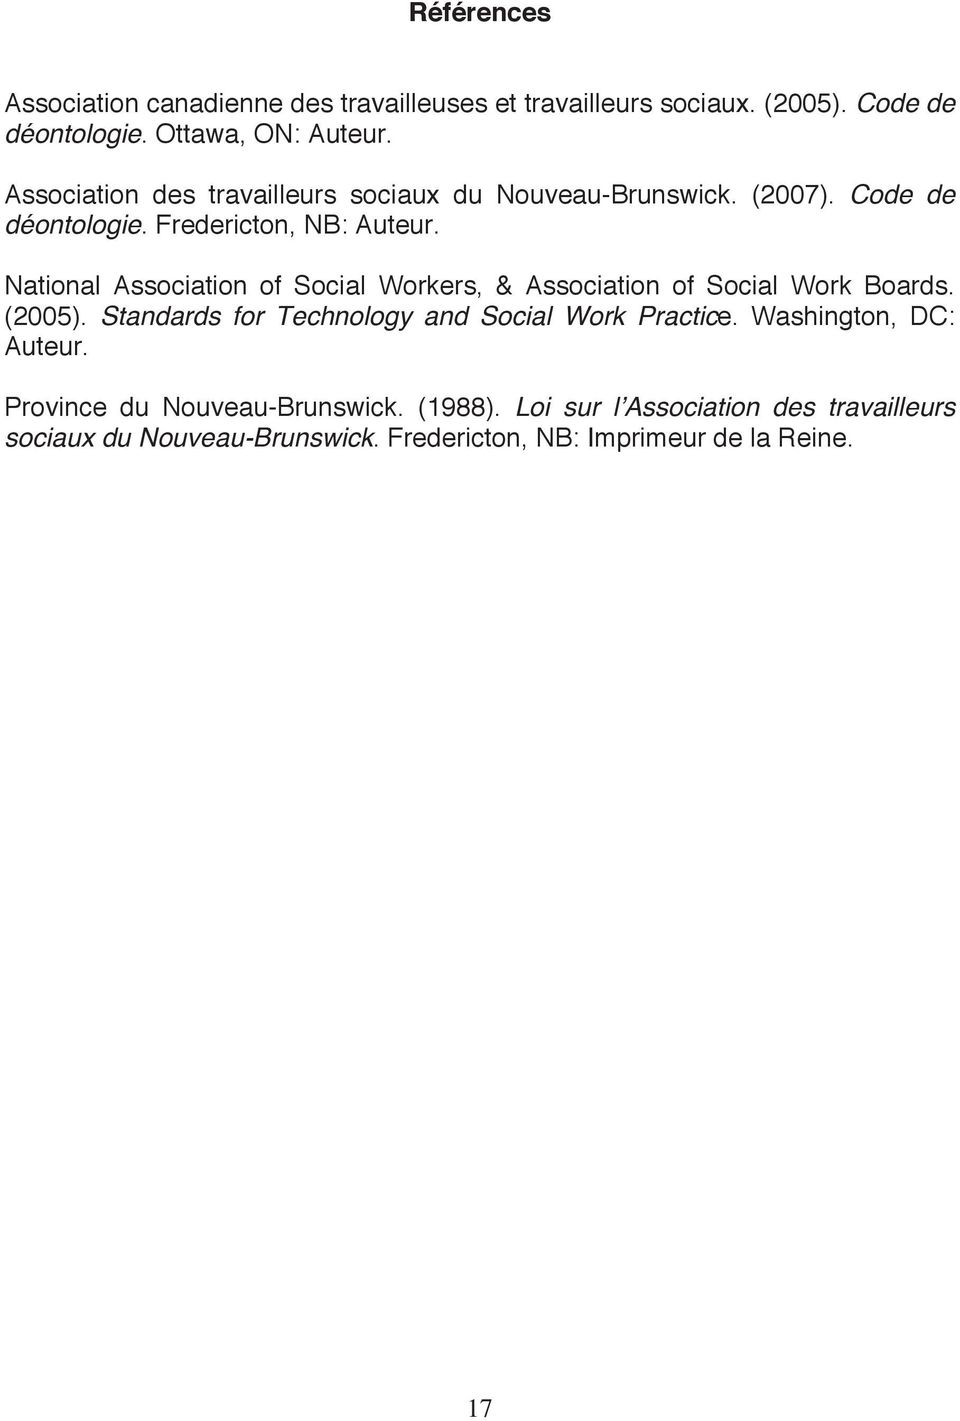 National Association of Social Workers, & Association of Social Work Boards. (2005). Standards for Technology and Social Work Practice.